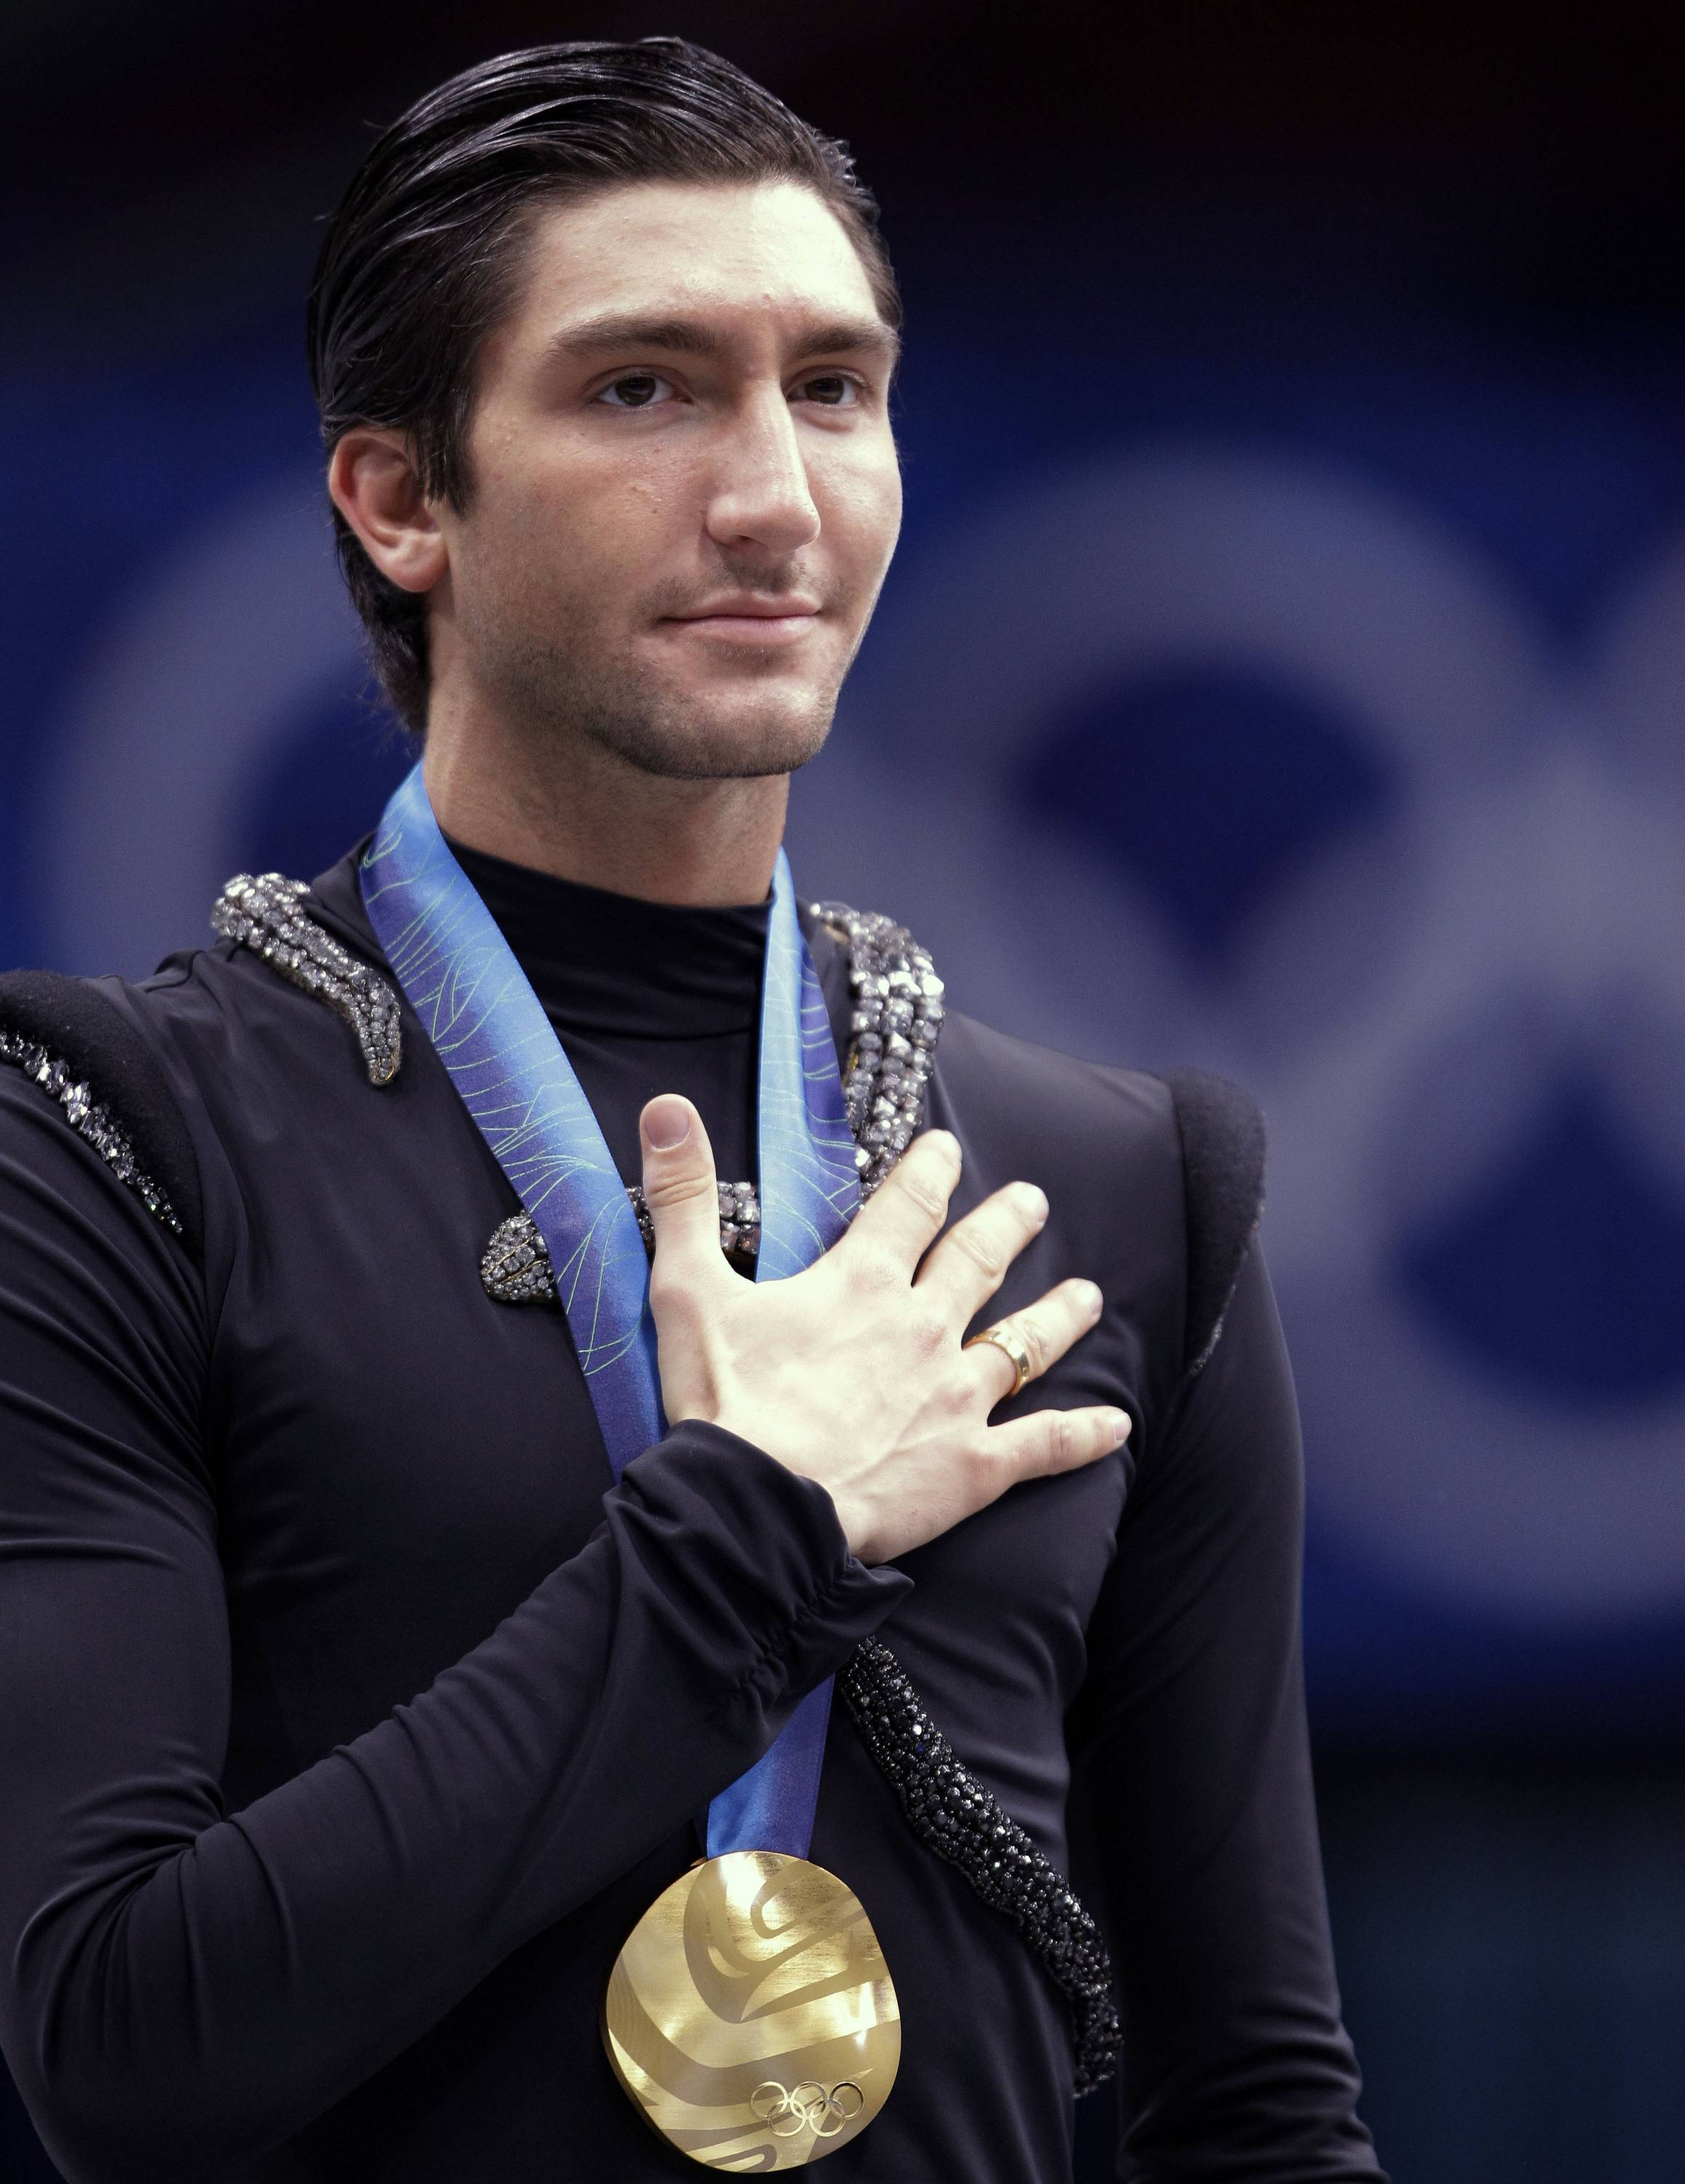 Olympic gold medalist Evan Lysacek is taking some time off.